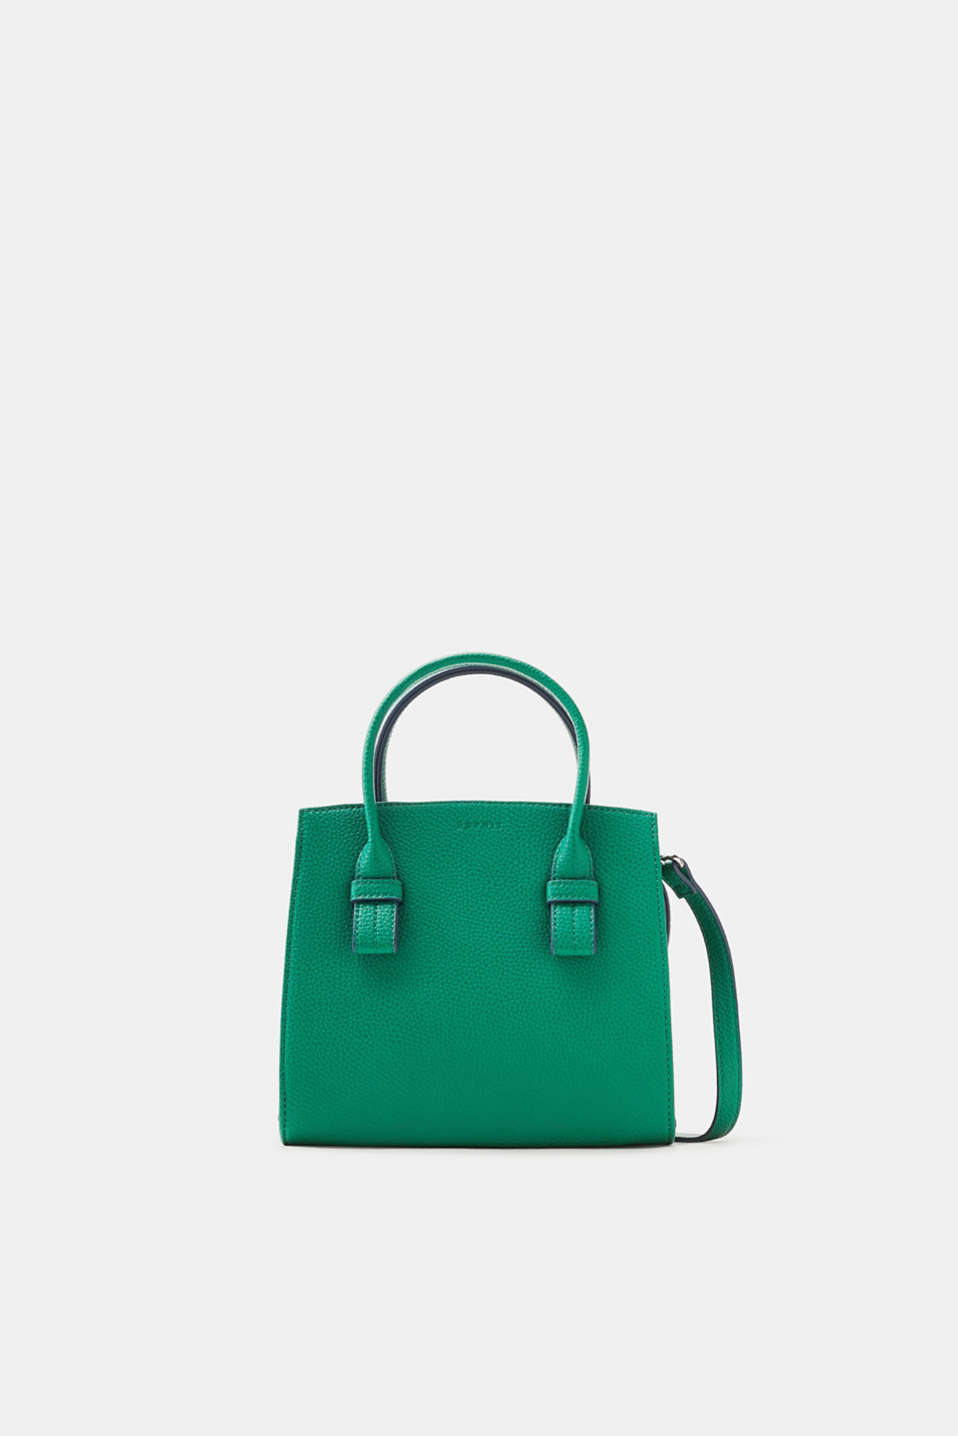 Esprit - City-bag i skindlook m. fint narv